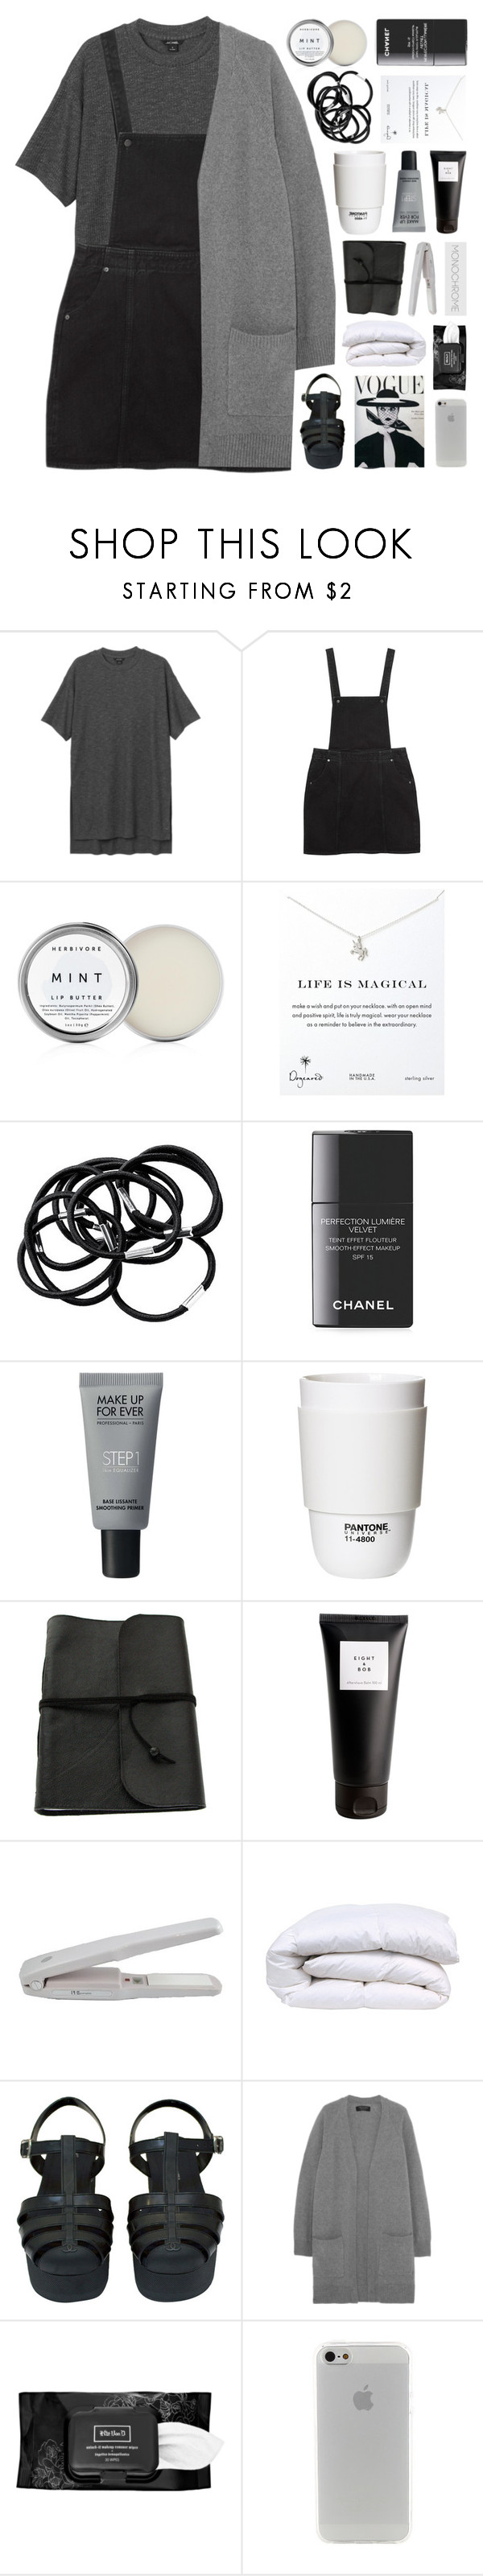 """""""Bilingual"""" by bosspresident ❤ liked on Polyvore featuring Monki, Herbivore, Dogeared, H&M, Chanel, MAKE UP FOR EVER, ROOM COPENHAGEN, Eight & Bob, rag & bone and Kat Von D"""